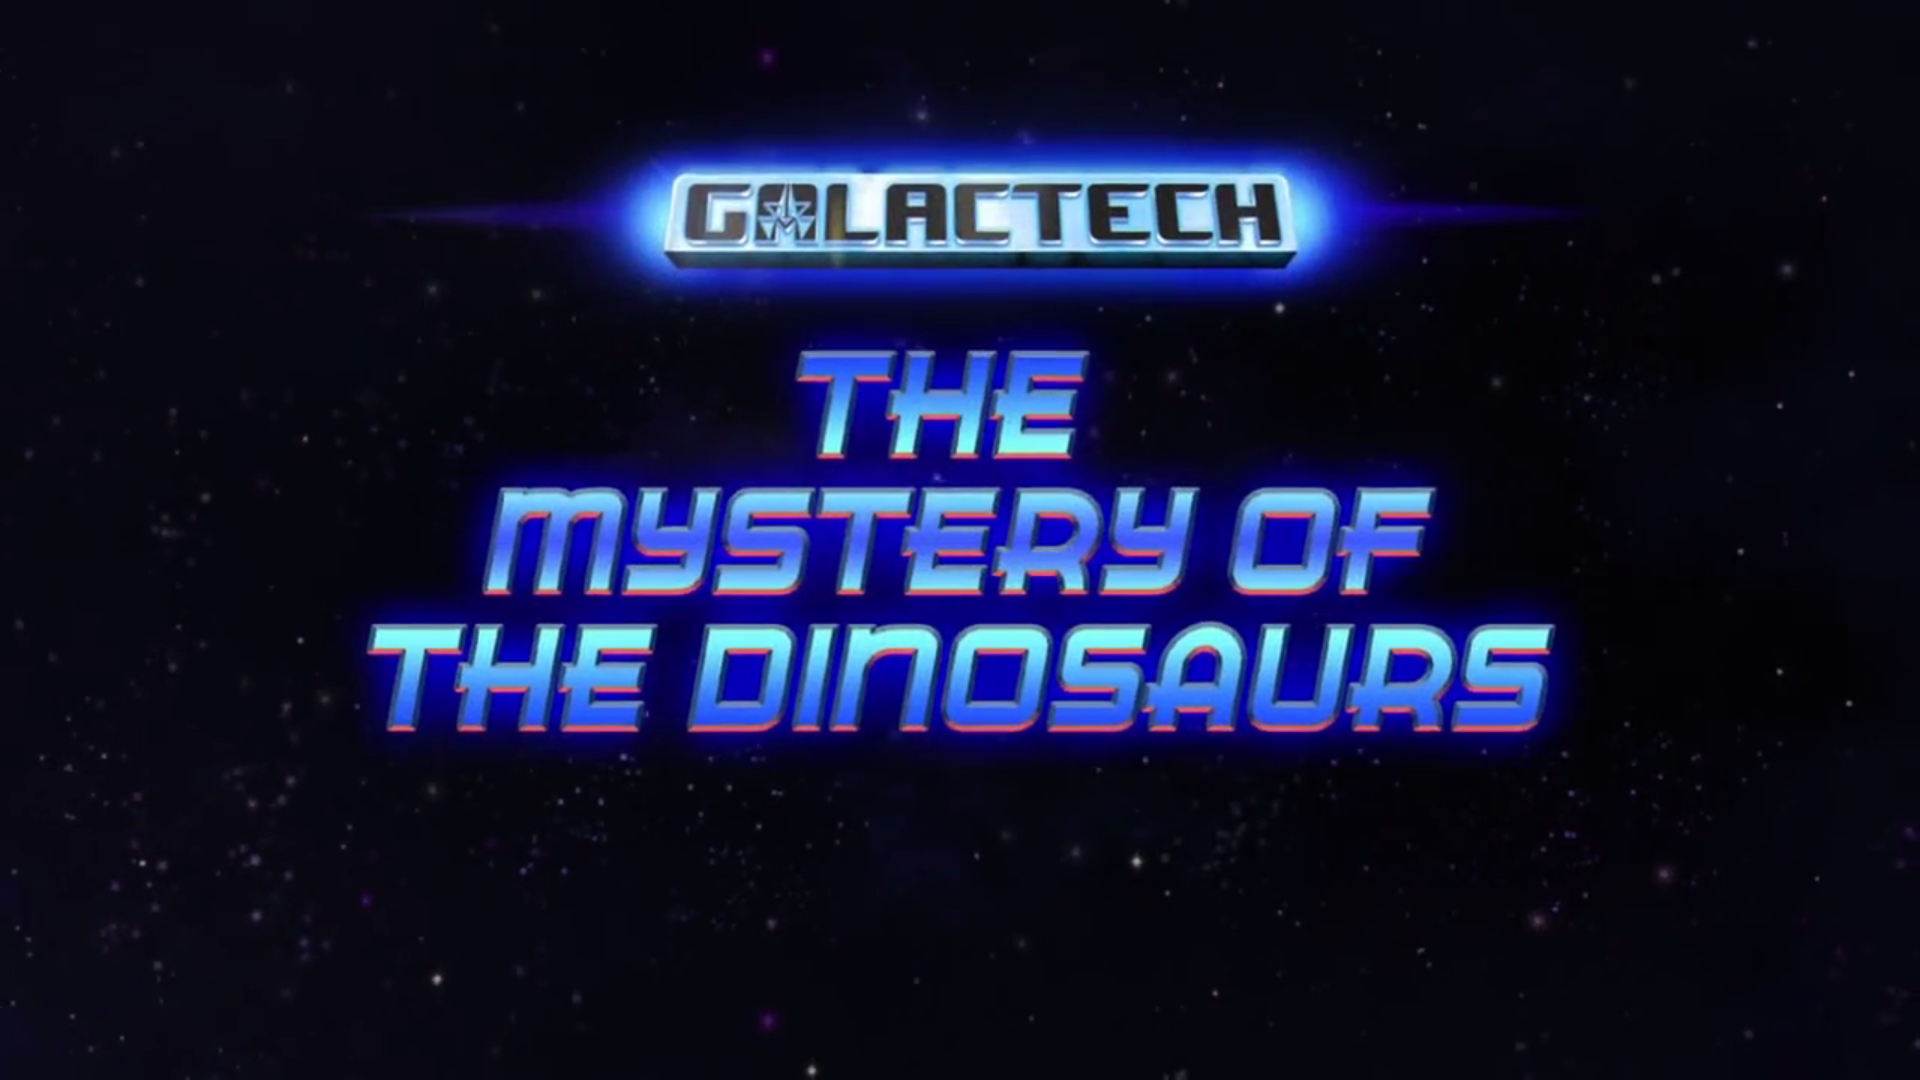 Galactech: The Mystery of the Dinosaurs